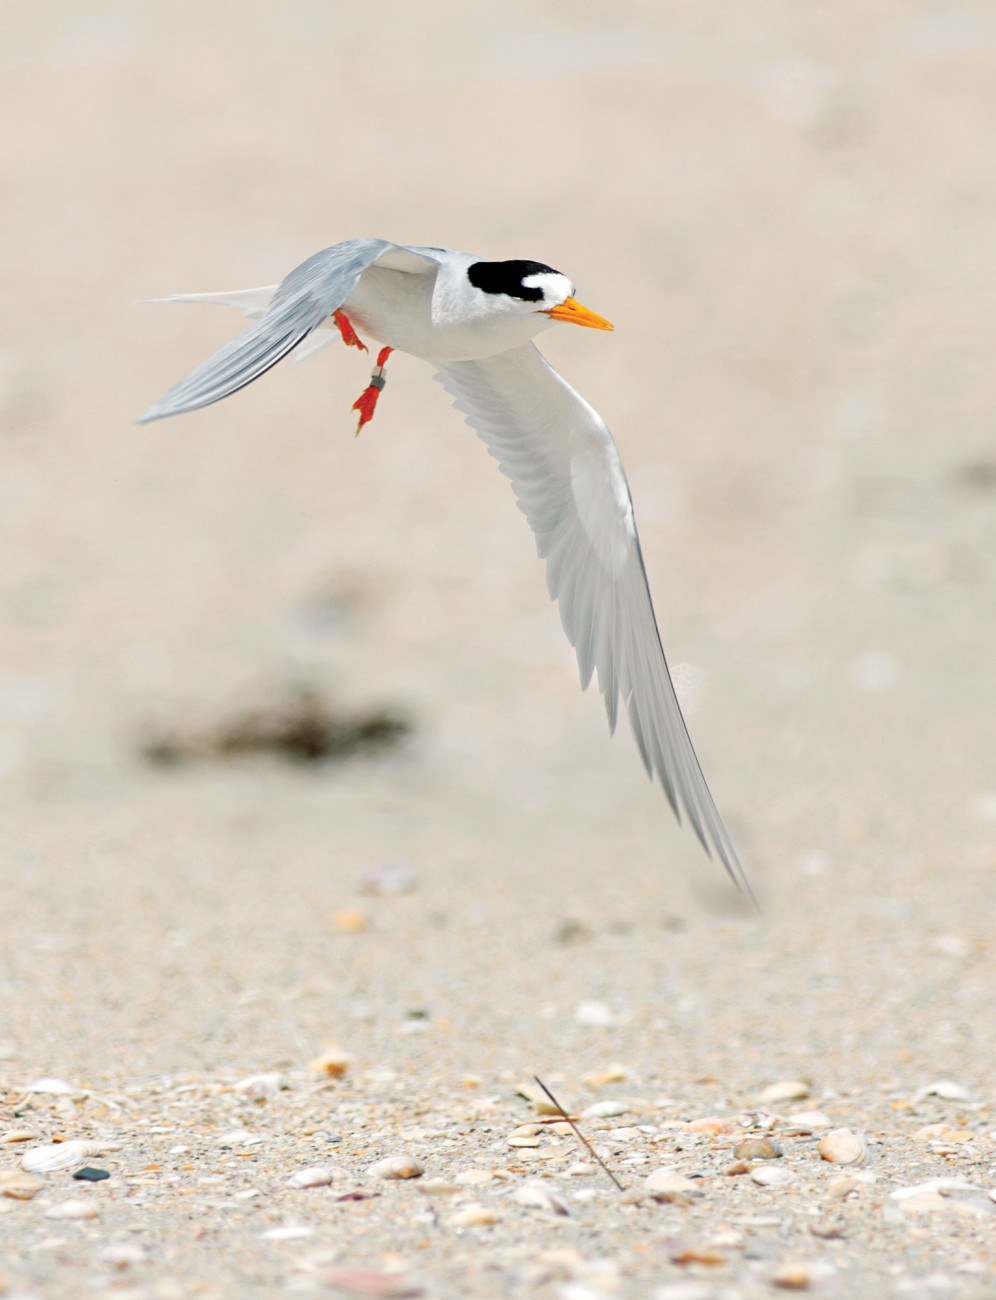 A male tern heads out at low tide to find fish in the shallows. More import- ant than feeding himself at this time of year is bringing back food. His prowess as a provider makes him irresistible in the mating stakes.